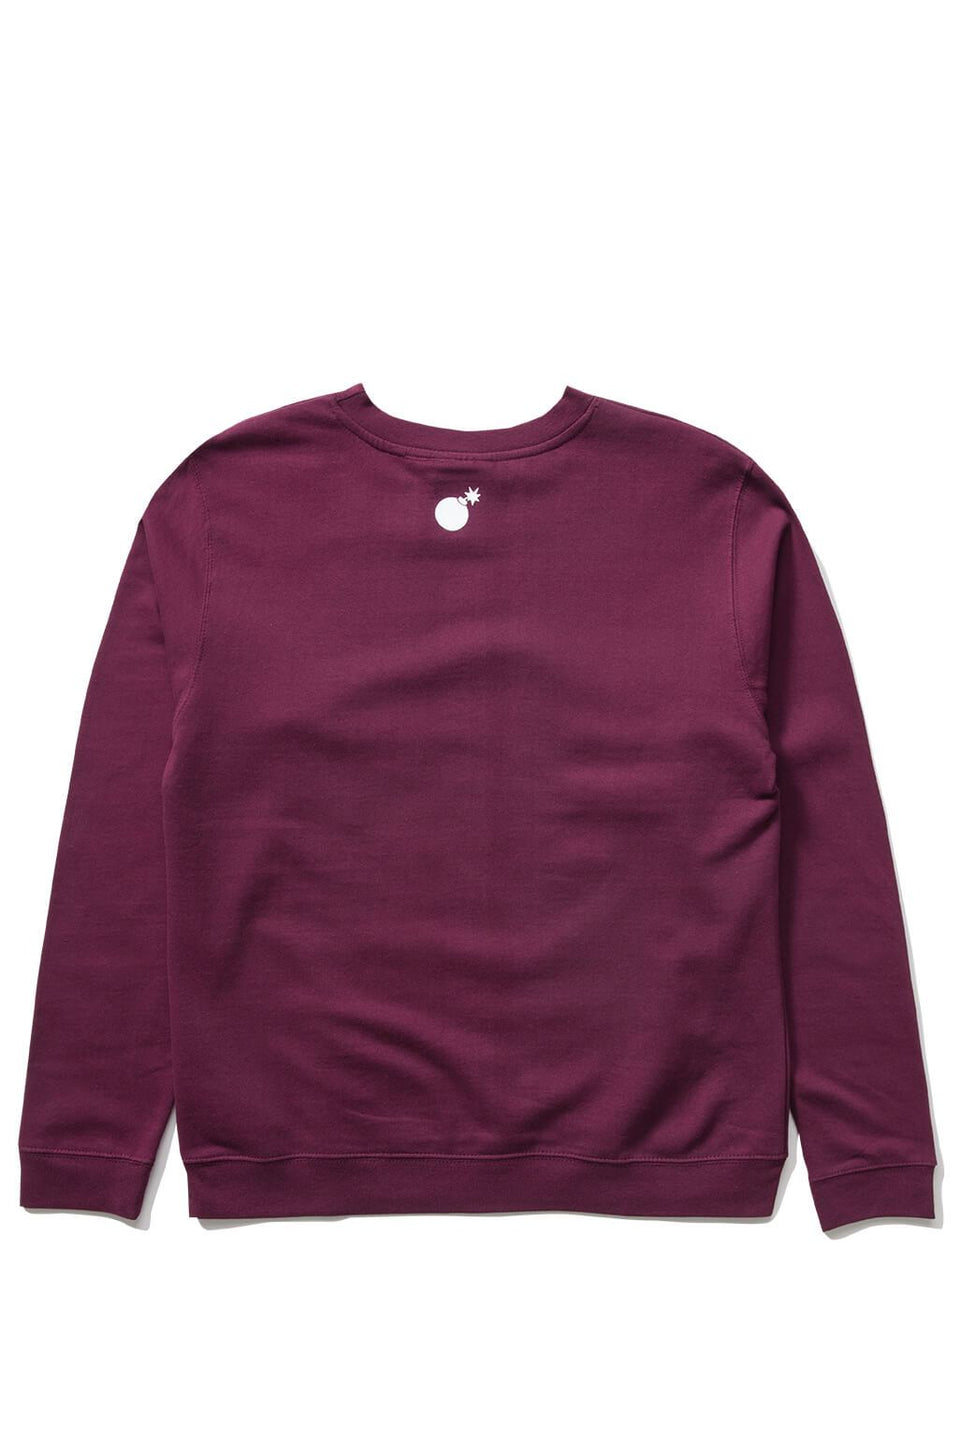 The Hundreds Forever Bar Crewneck Sweatshirt Burgundy Back